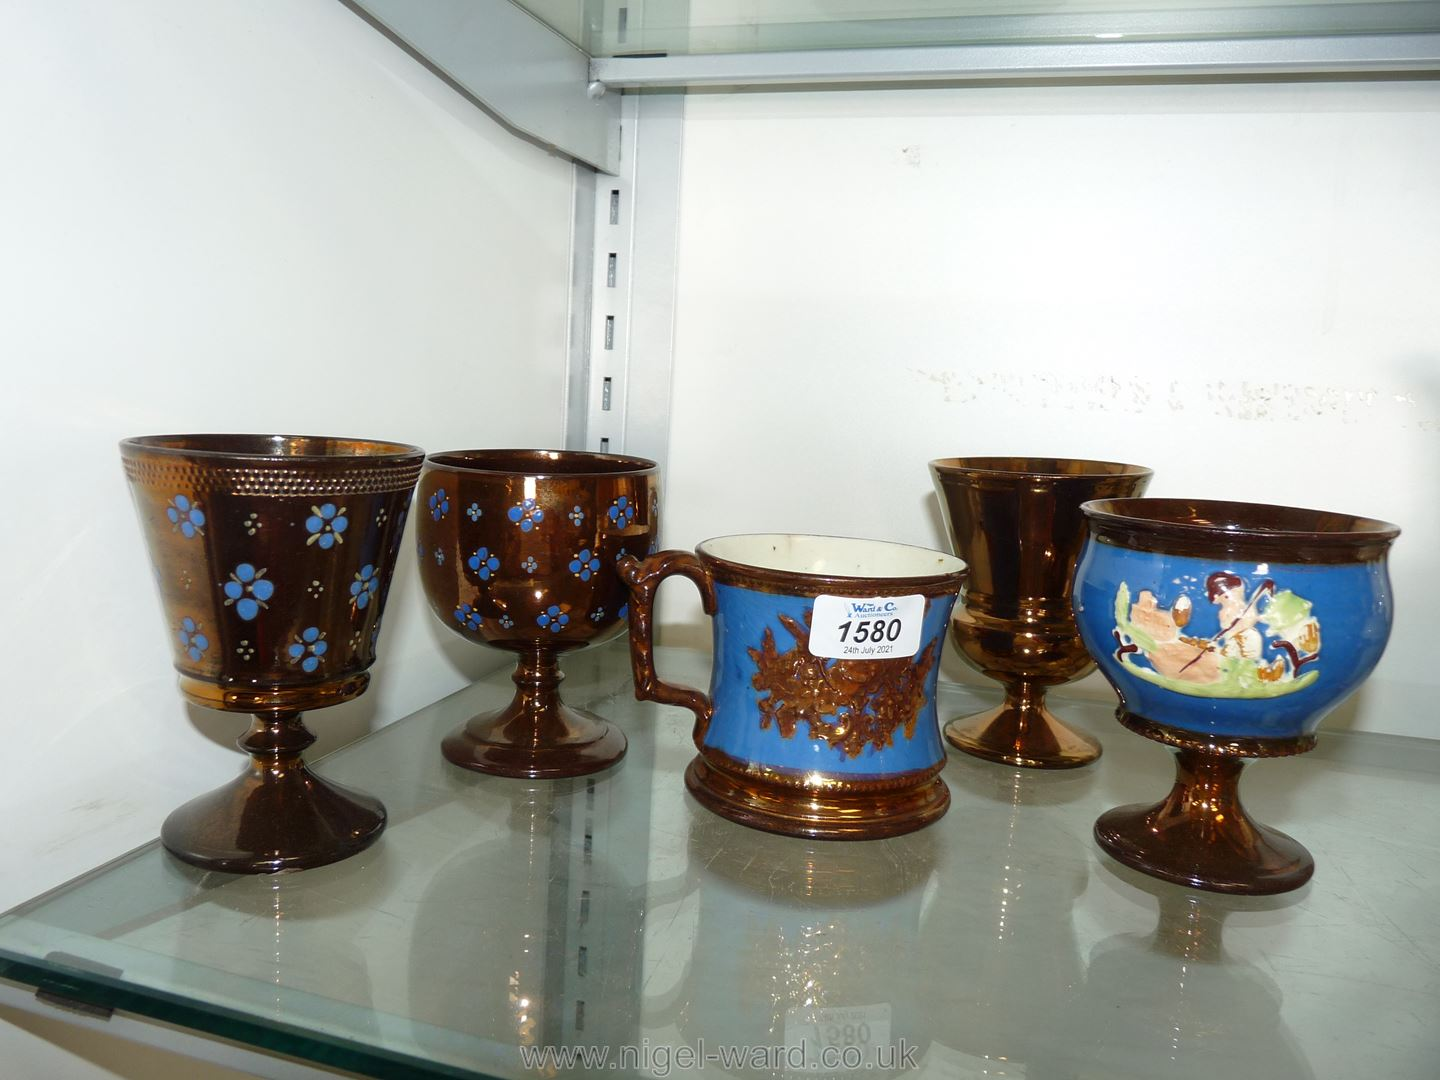 Four lustre Goblets including two with raised blue floral detail, one rural scene and one plain, - Image 2 of 2